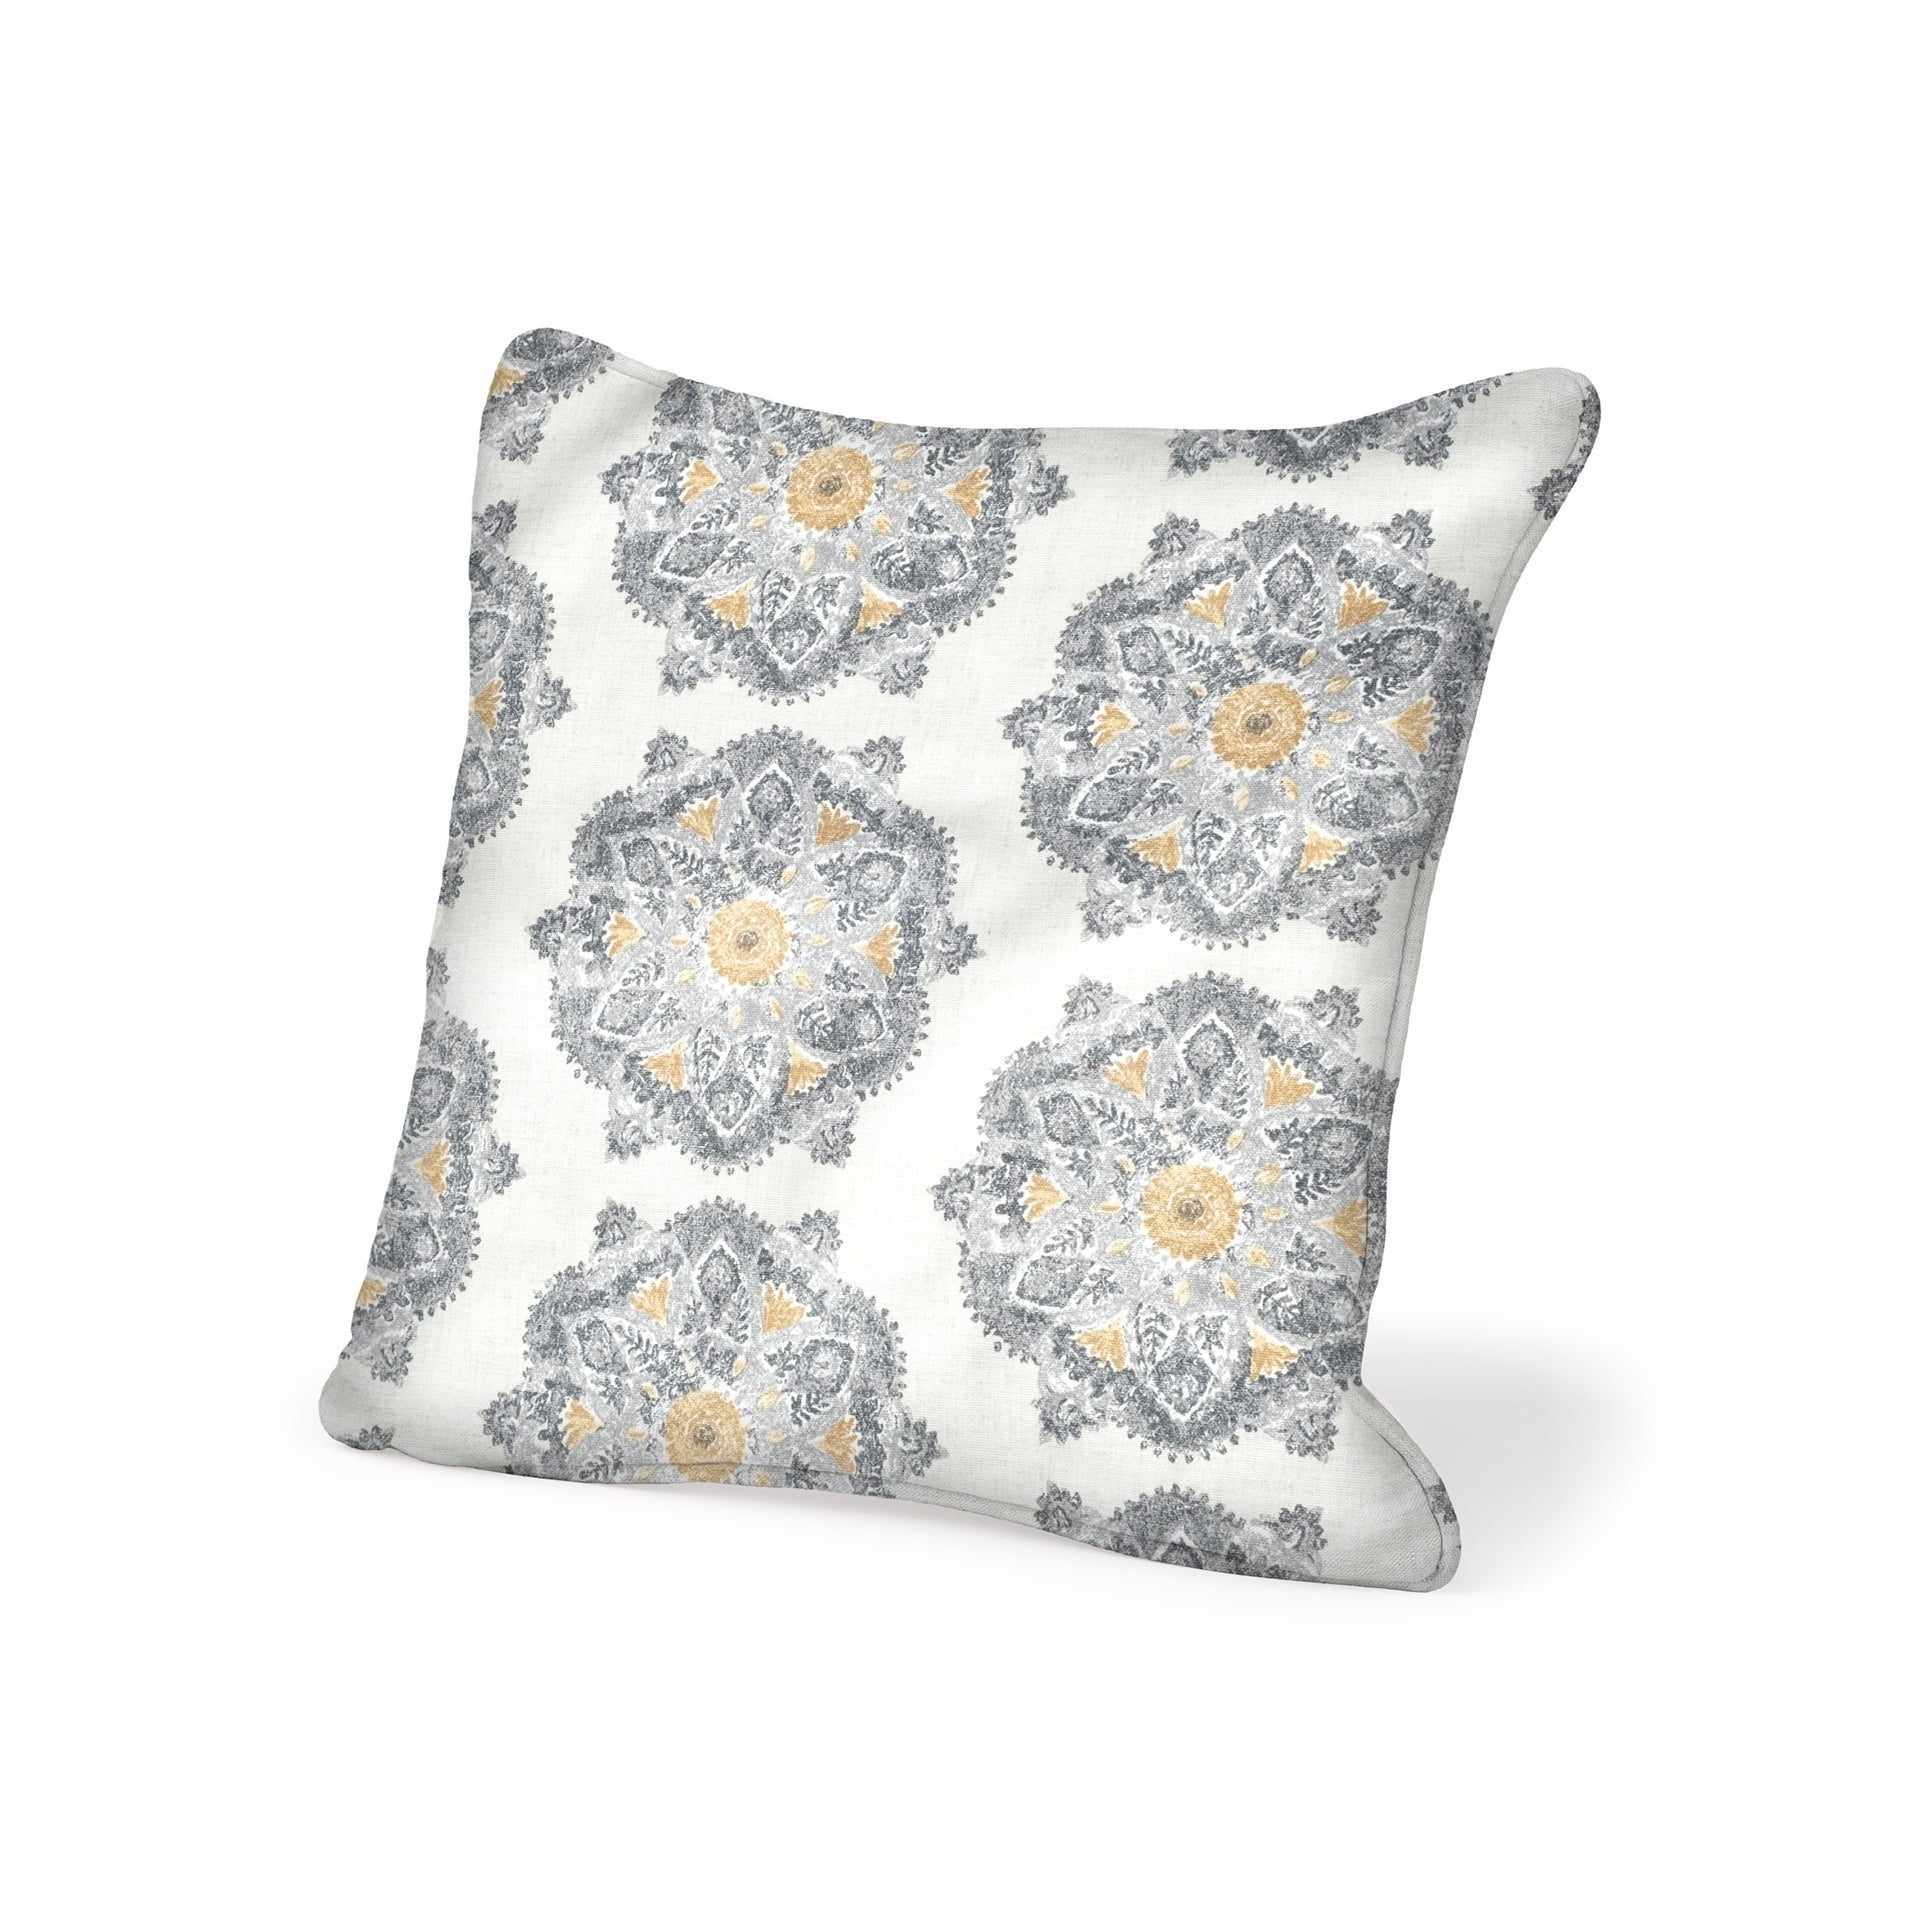 Mercana Coxcomb I 18 x 18 (cover only) Decorative Pillow